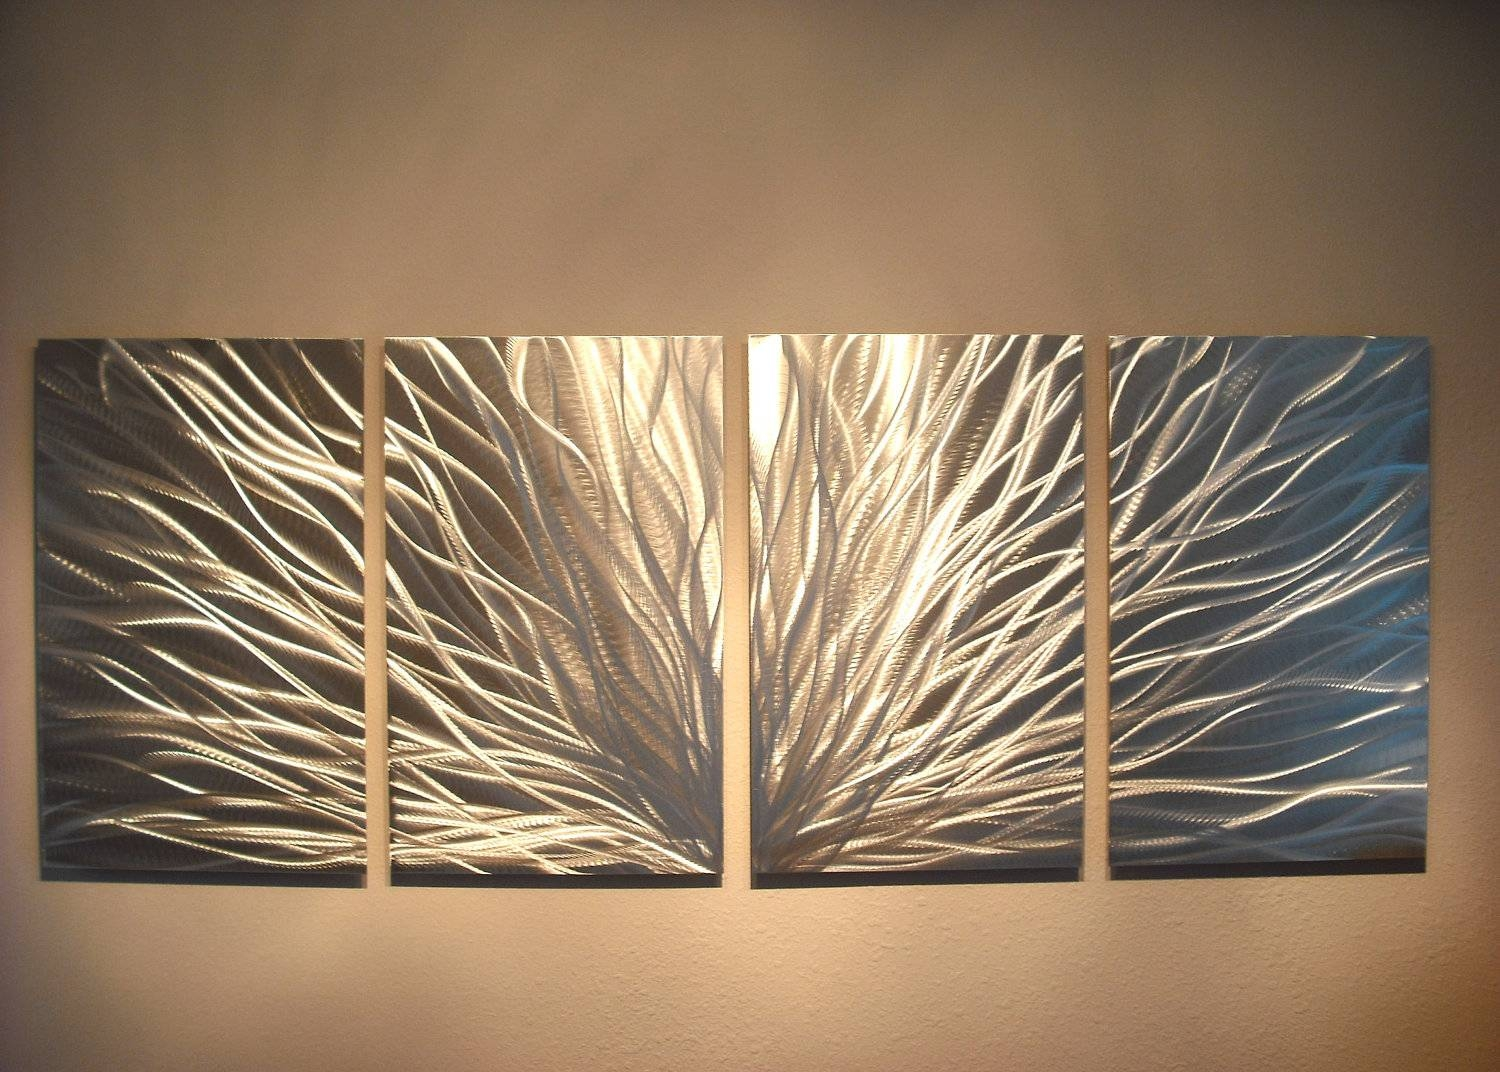 Radiance – Abstract Metal Wall Art Contemporary Modern Decor Within 2018 Black Metal Wall Art Decor (View 9 of 20)